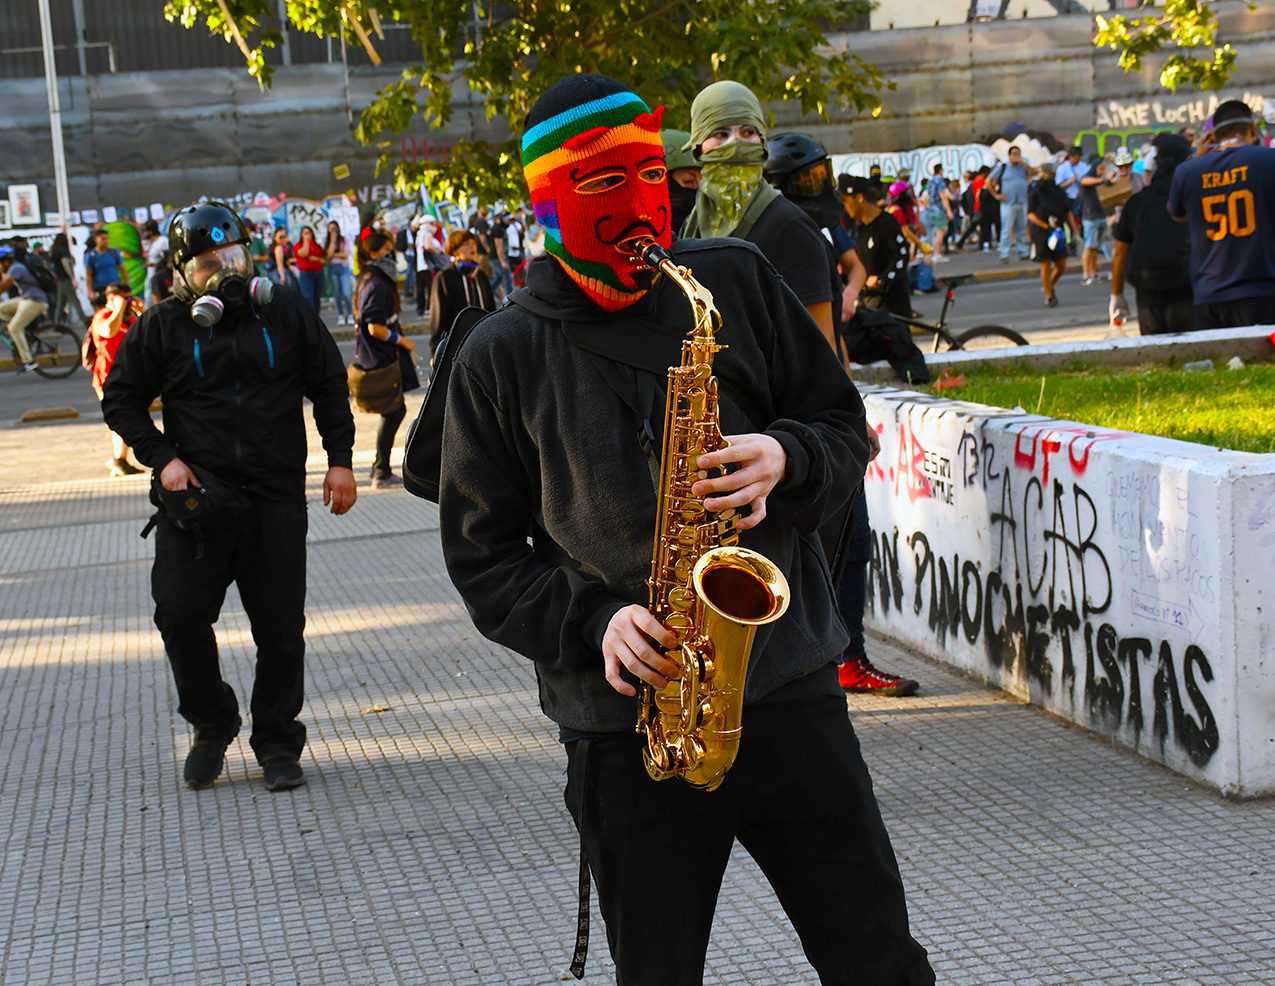 Protester wearing a rainbox mask plays the saxophone in the streets of Santiago